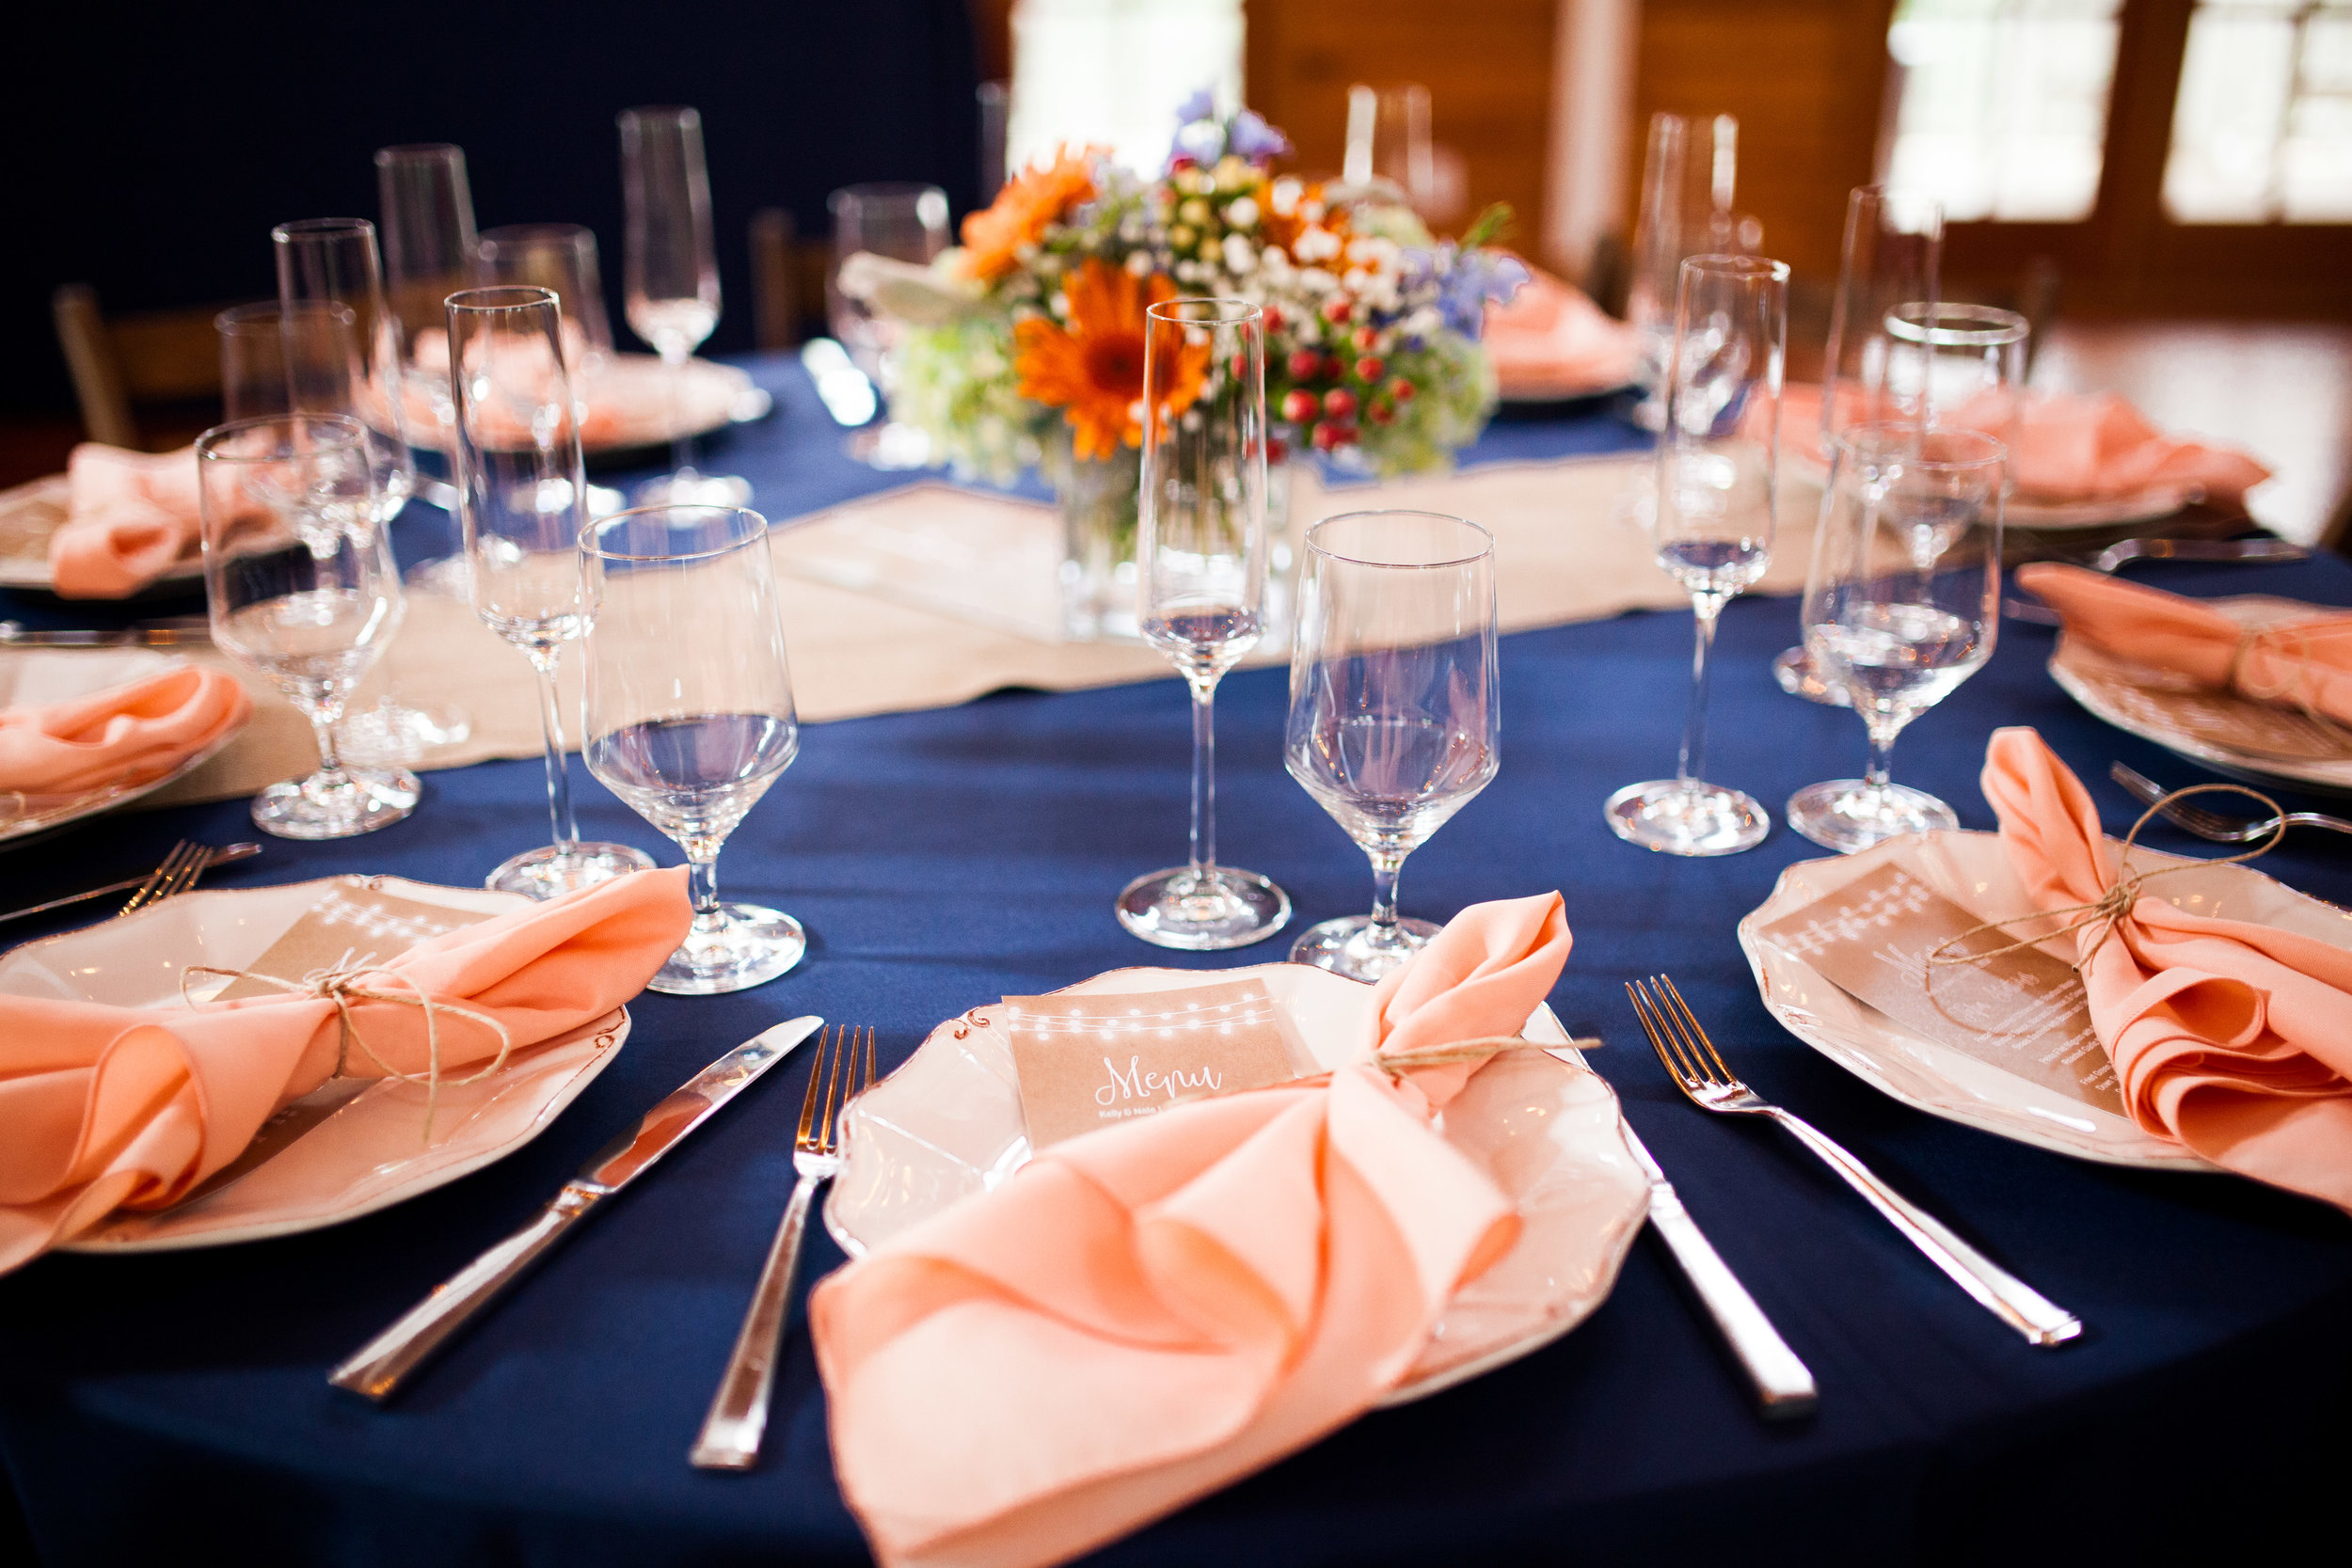 A CORAL + NAVY WEDDING AT THE POLAR GROVE BOATHOUSE